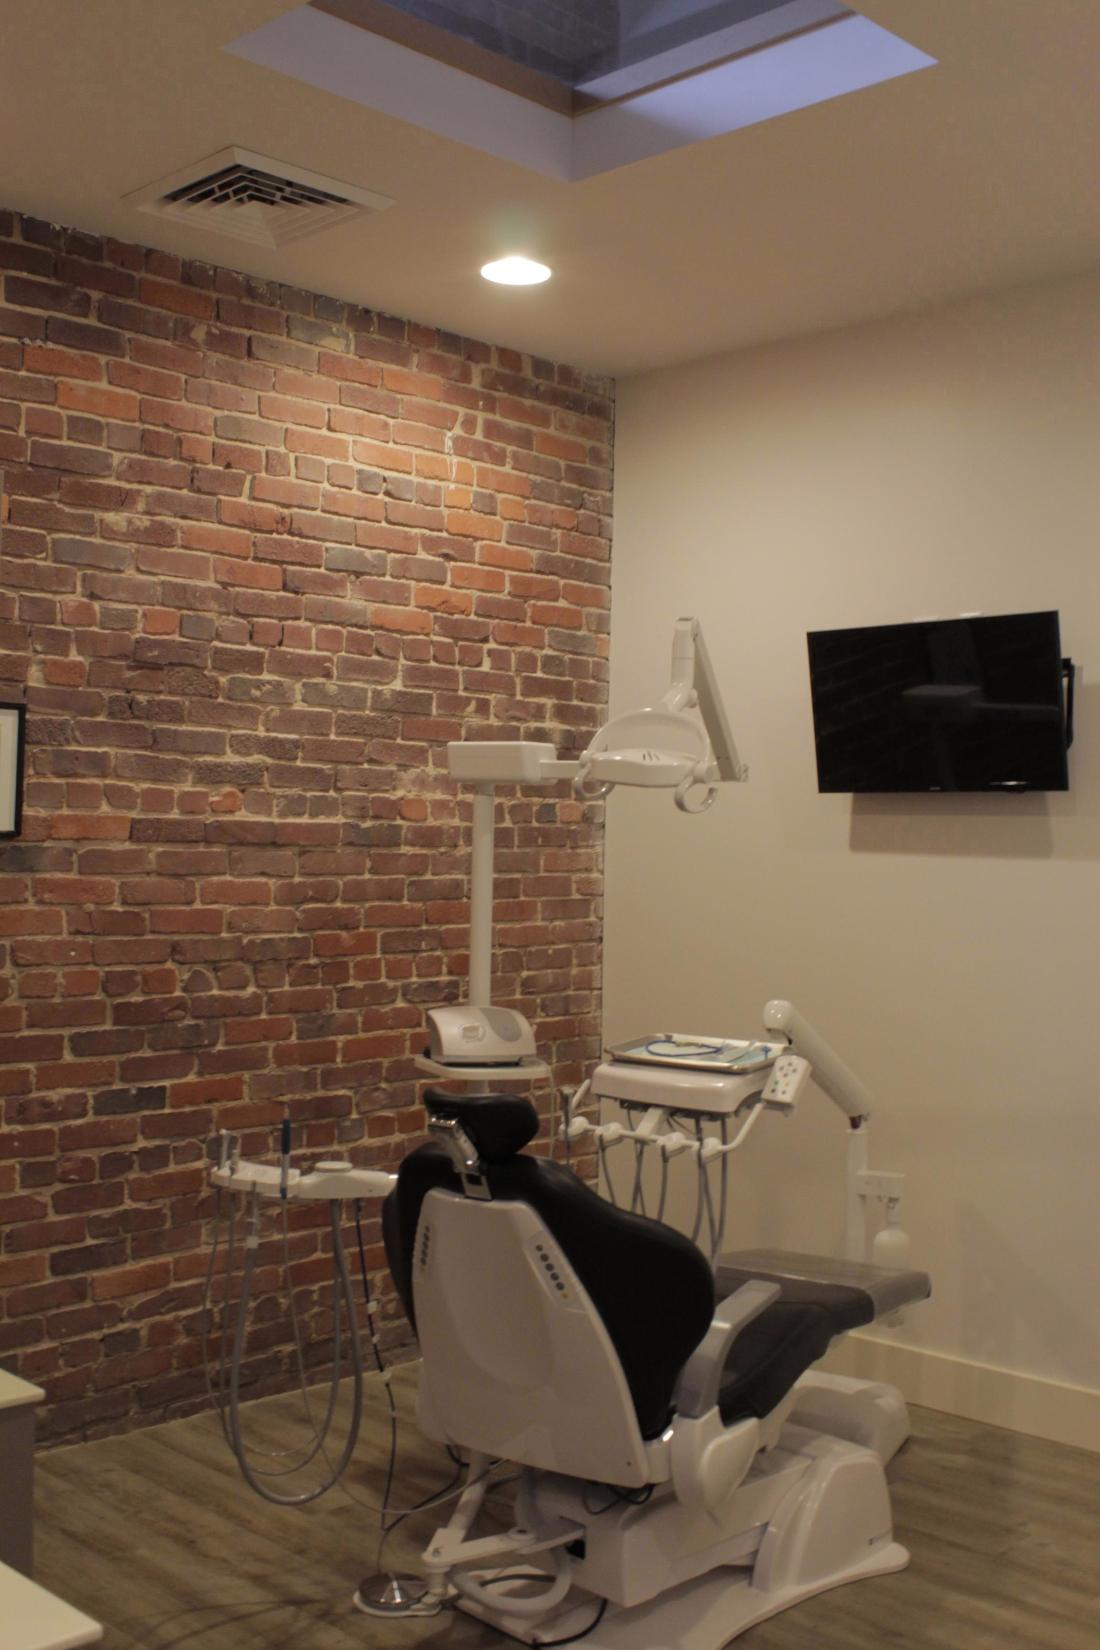 Cook DMD Exam Room With Sky Light